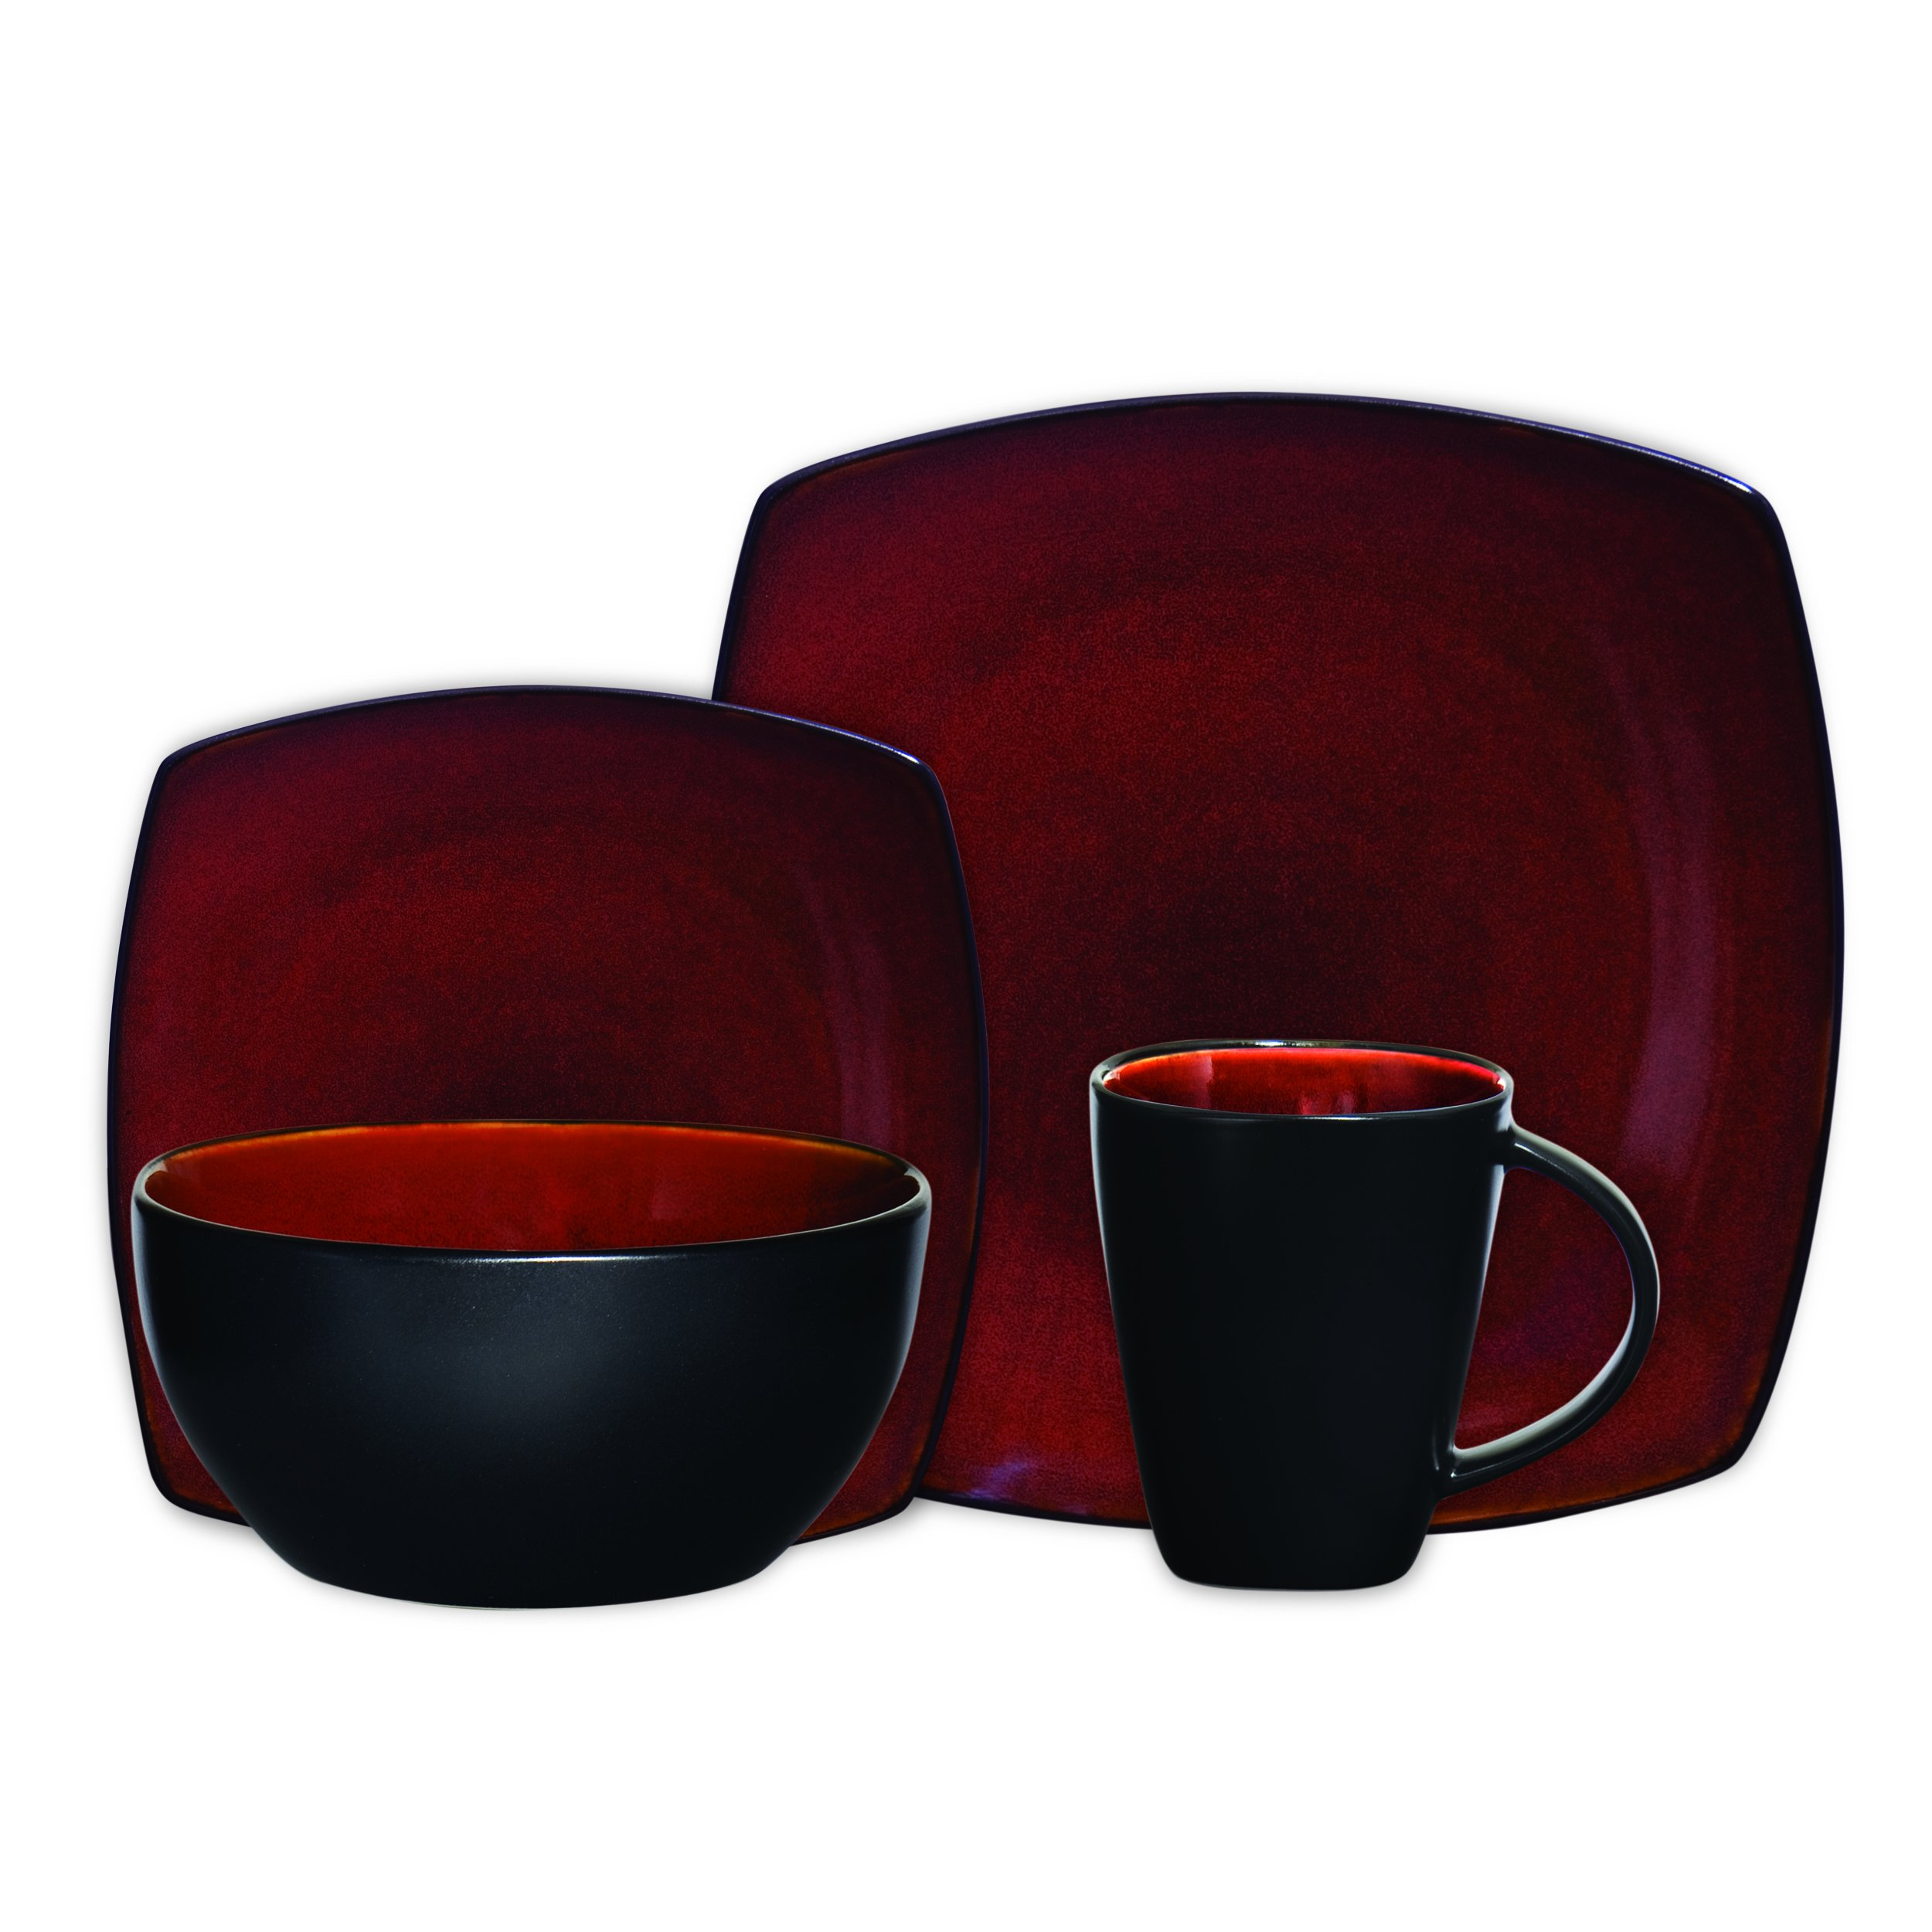 Gibson Elite Soho Lounge Reactive Glaze 16 Piece Dinnerware Set in Red; Includes 4 Dinner Plates; 4 Dessert Plates, 4 Bowls and 4 Mugs by Gibson